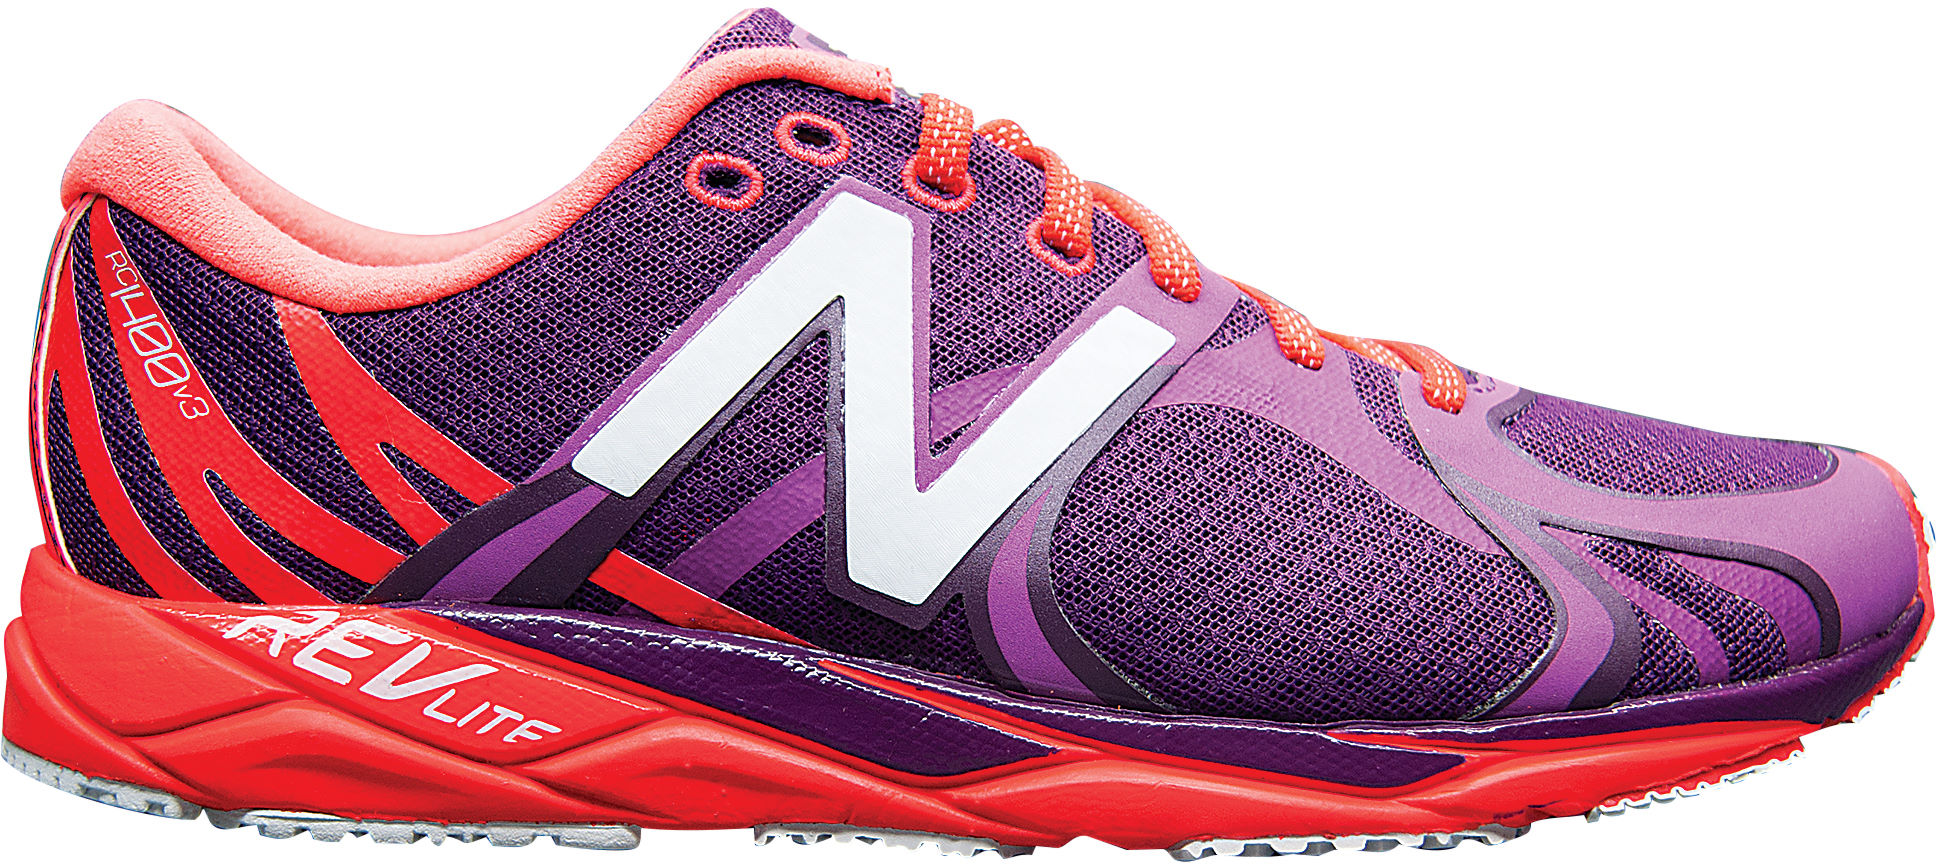 New Balance Running Trainers Womens